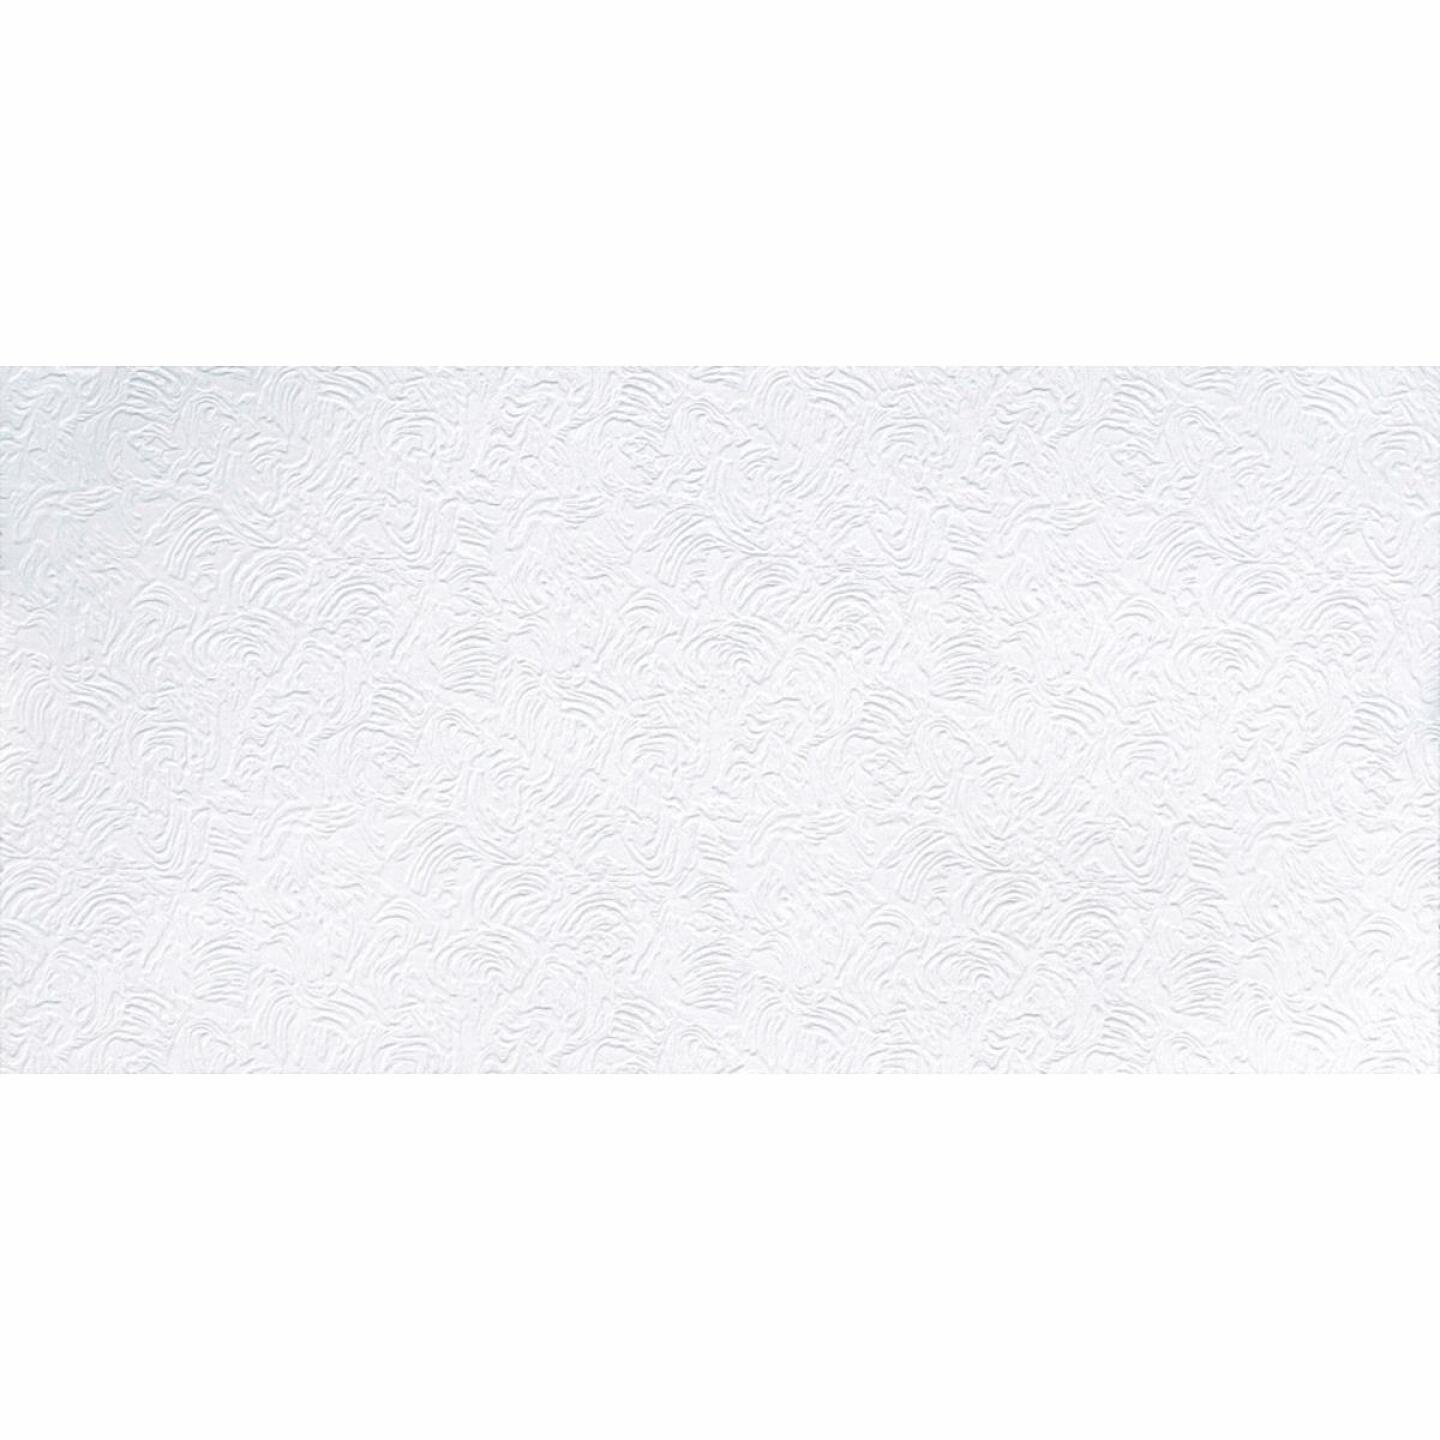 BP LifeStyle Caravelle 2 Ft. x 4 Ft. White Wood Fiber Suspended Ceiling Tile (8-Count) Image 3